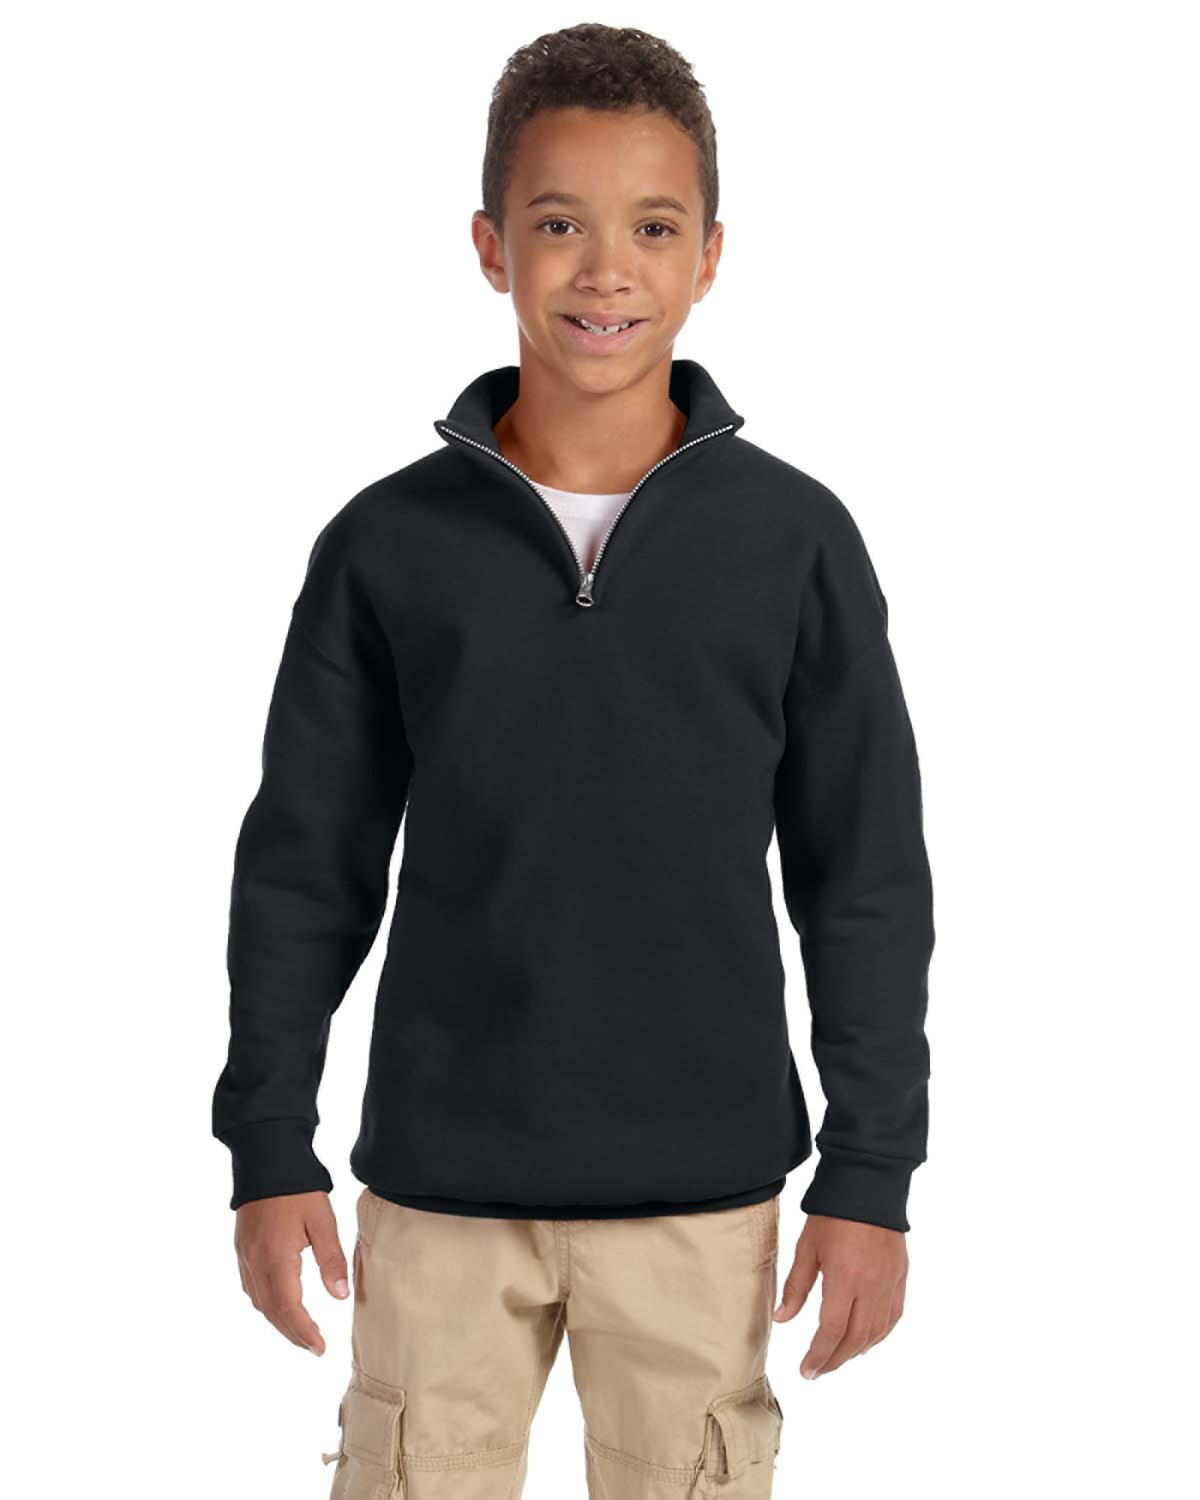 Youth 8 oz. NuBlend® Quarter-Zip Cadet Collar Sweatshirt